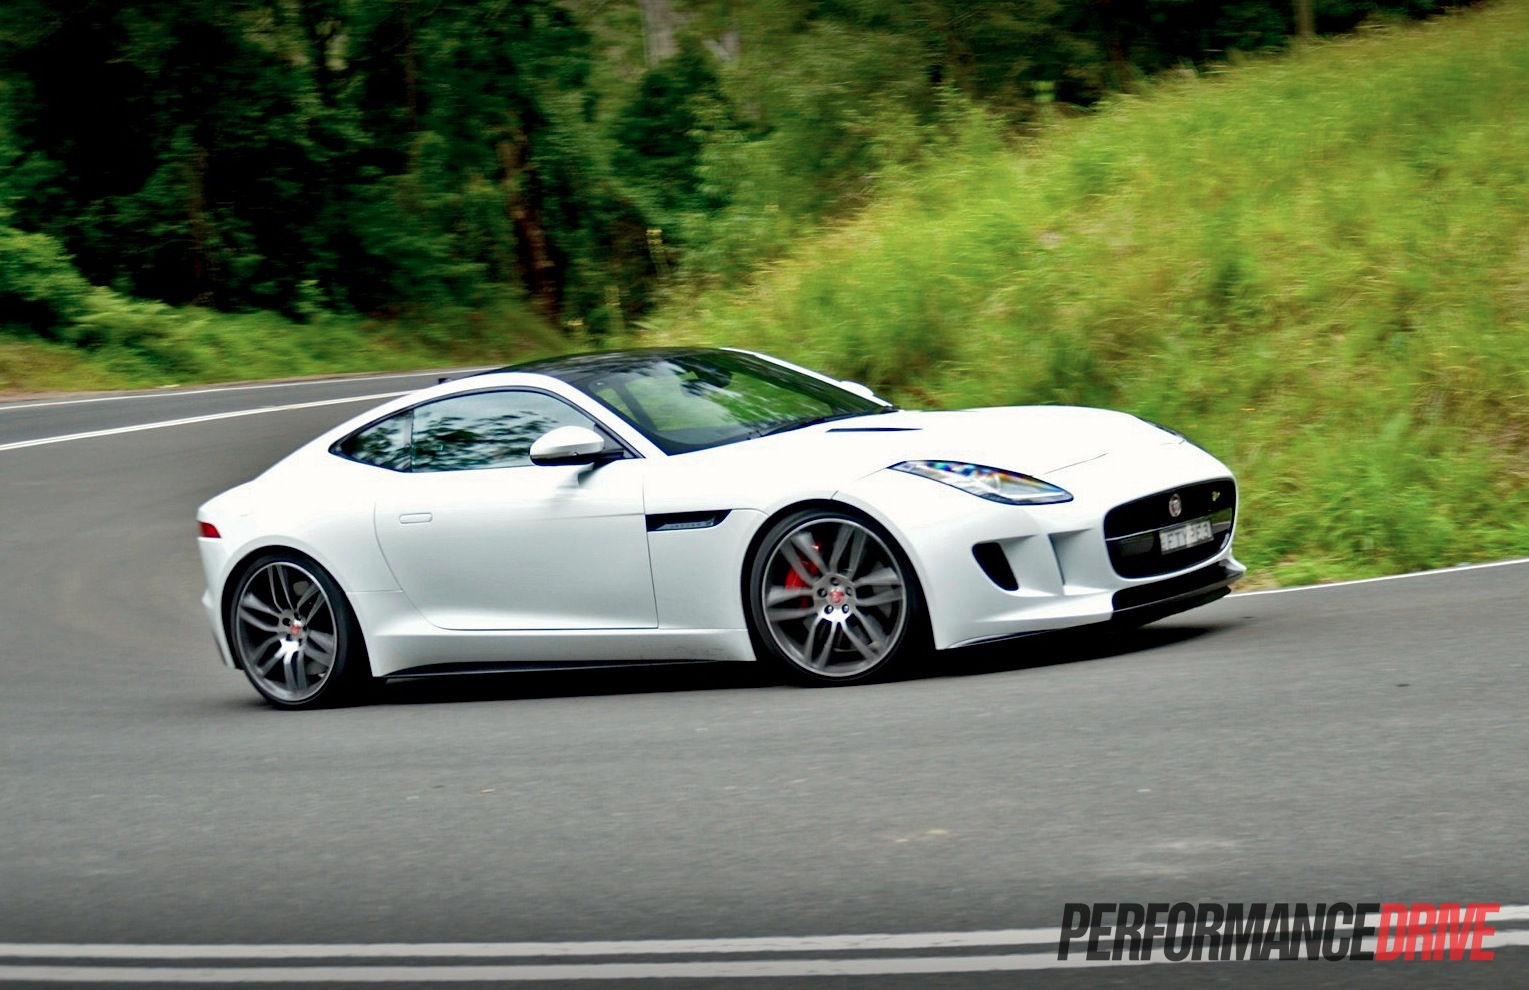 2015 jaguar f type r coupe review video performancedrive. Black Bedroom Furniture Sets. Home Design Ideas